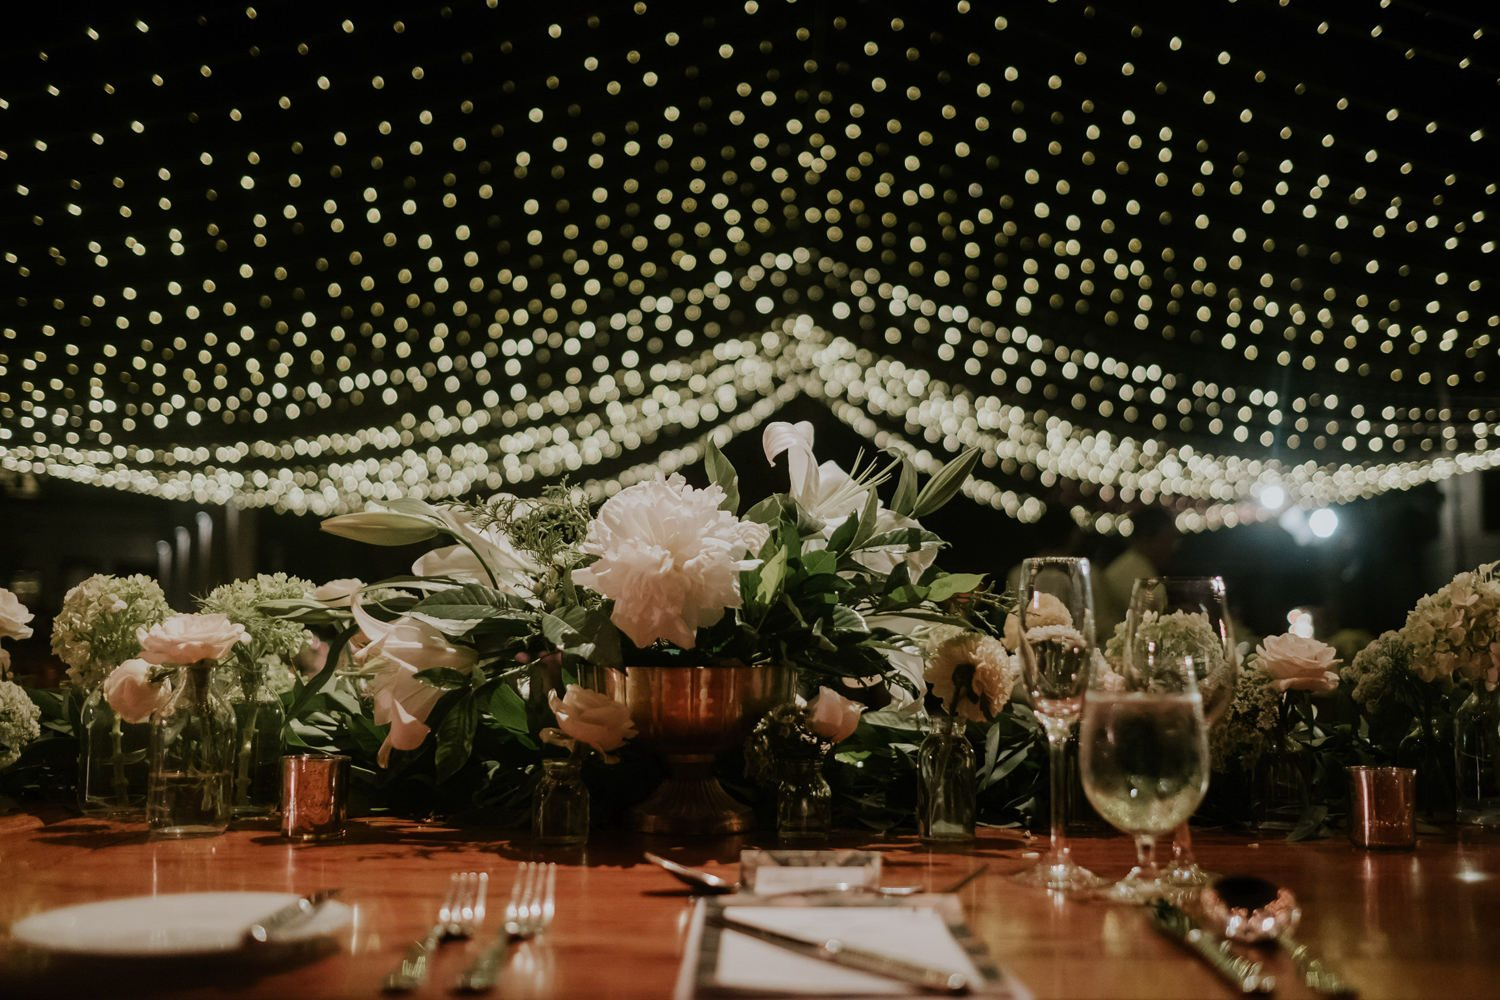 Lets talk bali wedding bloomz with one of the best bali event hire pma bloomz flowers events bali affectionately known as bloomz junglespirit Gallery